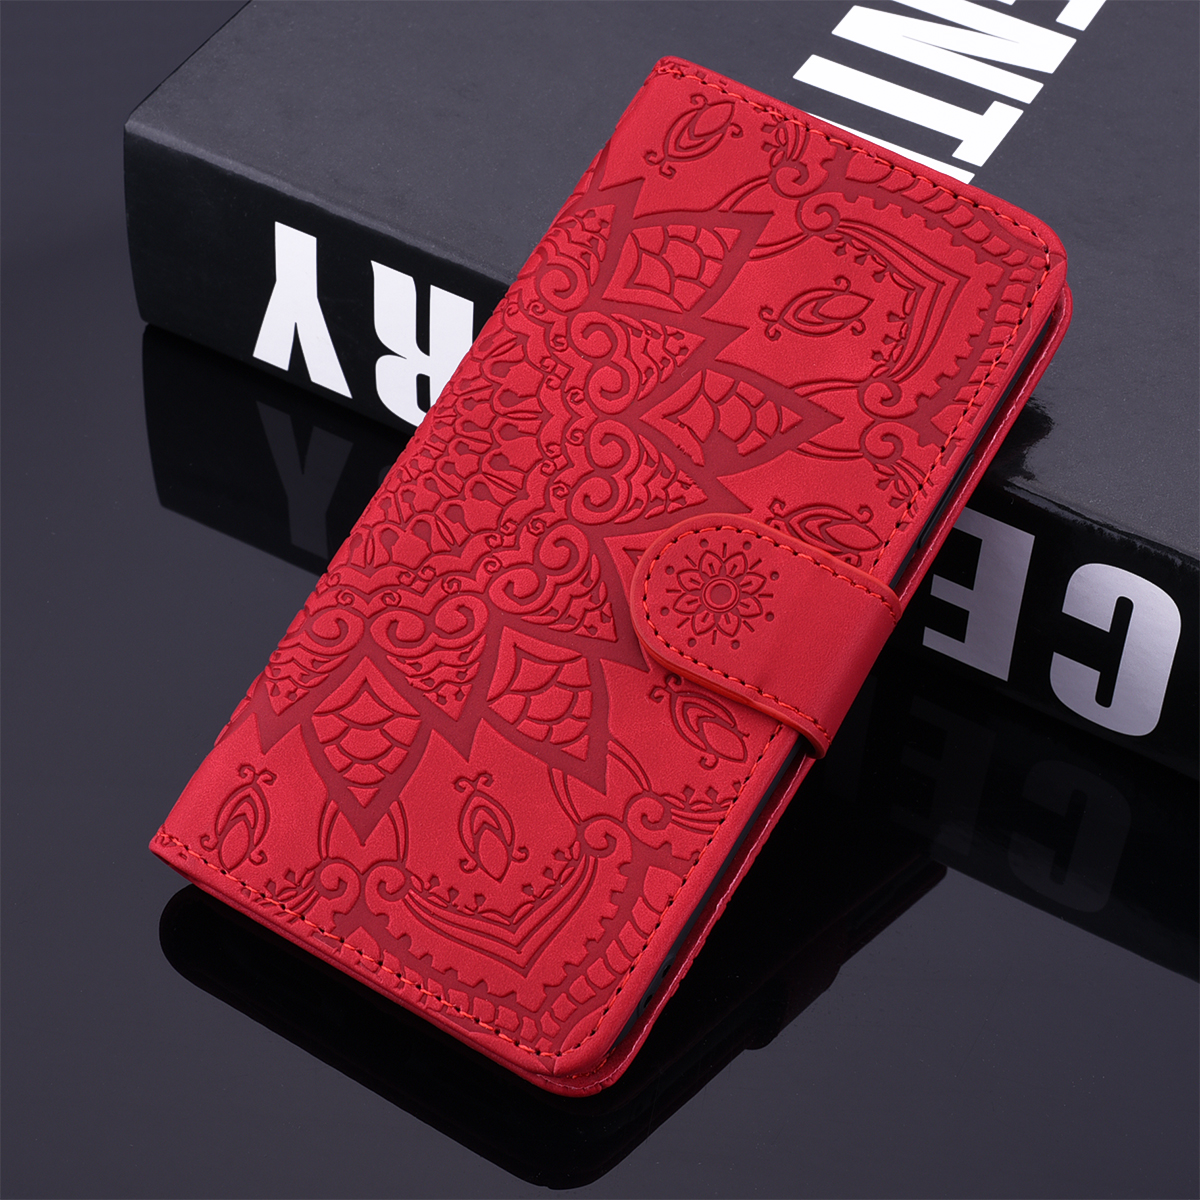 Leather <font><b>Case</b></font> For <font><b>Samsung</b></font> <font><b>Galaxy</b></font> A50 A51 A71 A10 A30S A30 A20 <font><b>A70</b></font> S20 Ultra S10 S9 S8 Plus Flip <font><b>Case</b></font> Cover for <font><b>Samsung</b></font> A 50 51 71 image